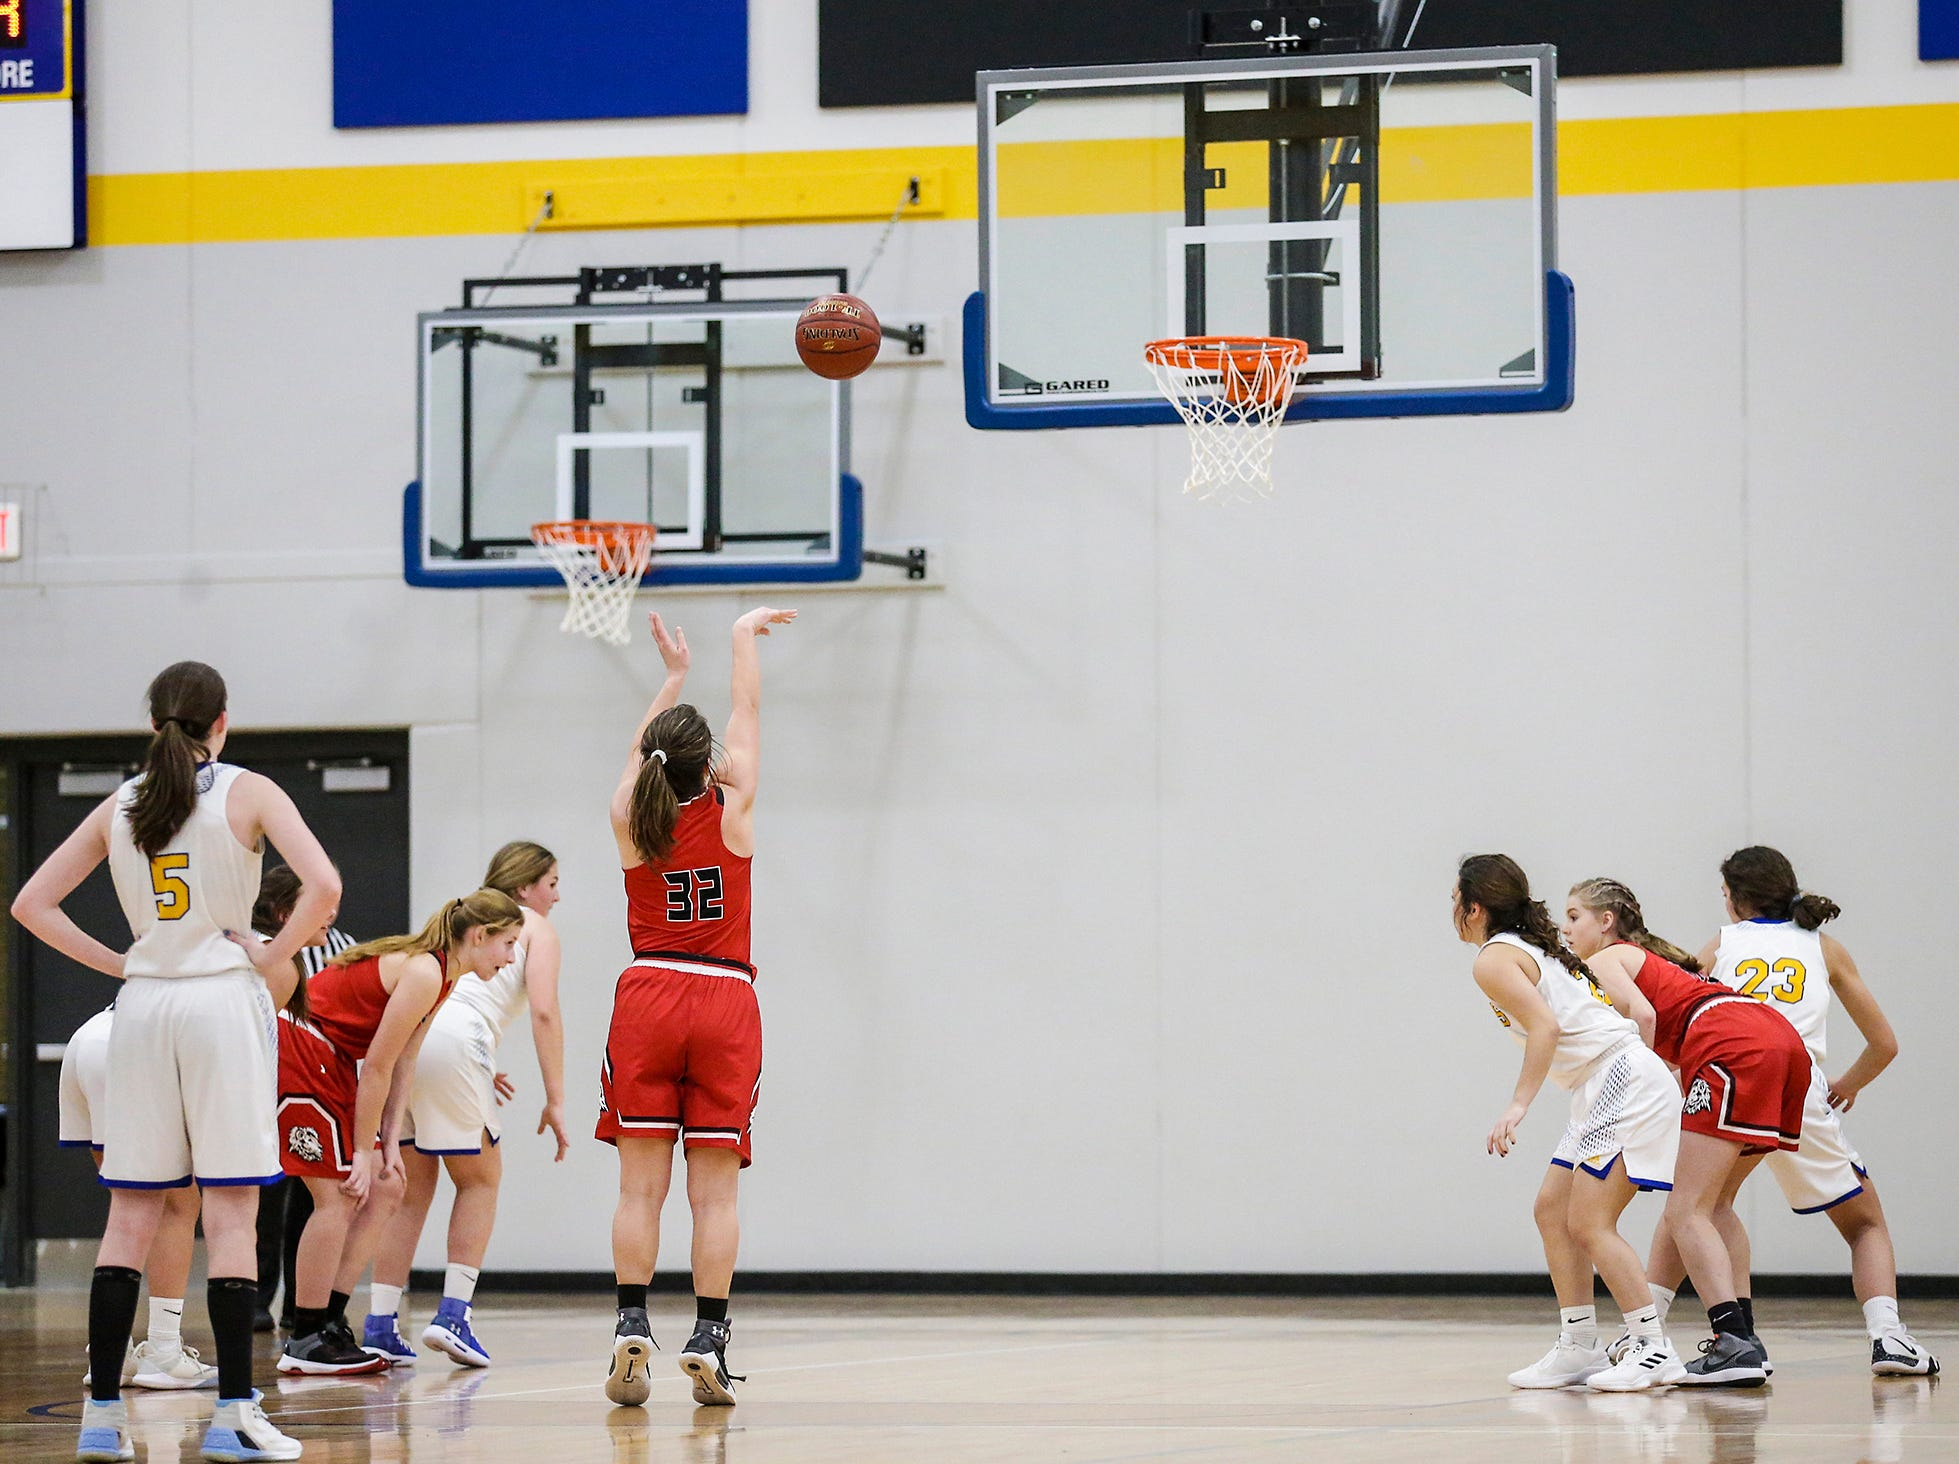 Lomira High School girls basketball's Crystal Geiger attempts a free throw against Campbellsport High School during their game Friday, December 28, 2018 in Campbellsport. Doug Raflik/USA TODAY NETWORK-Wisconsin